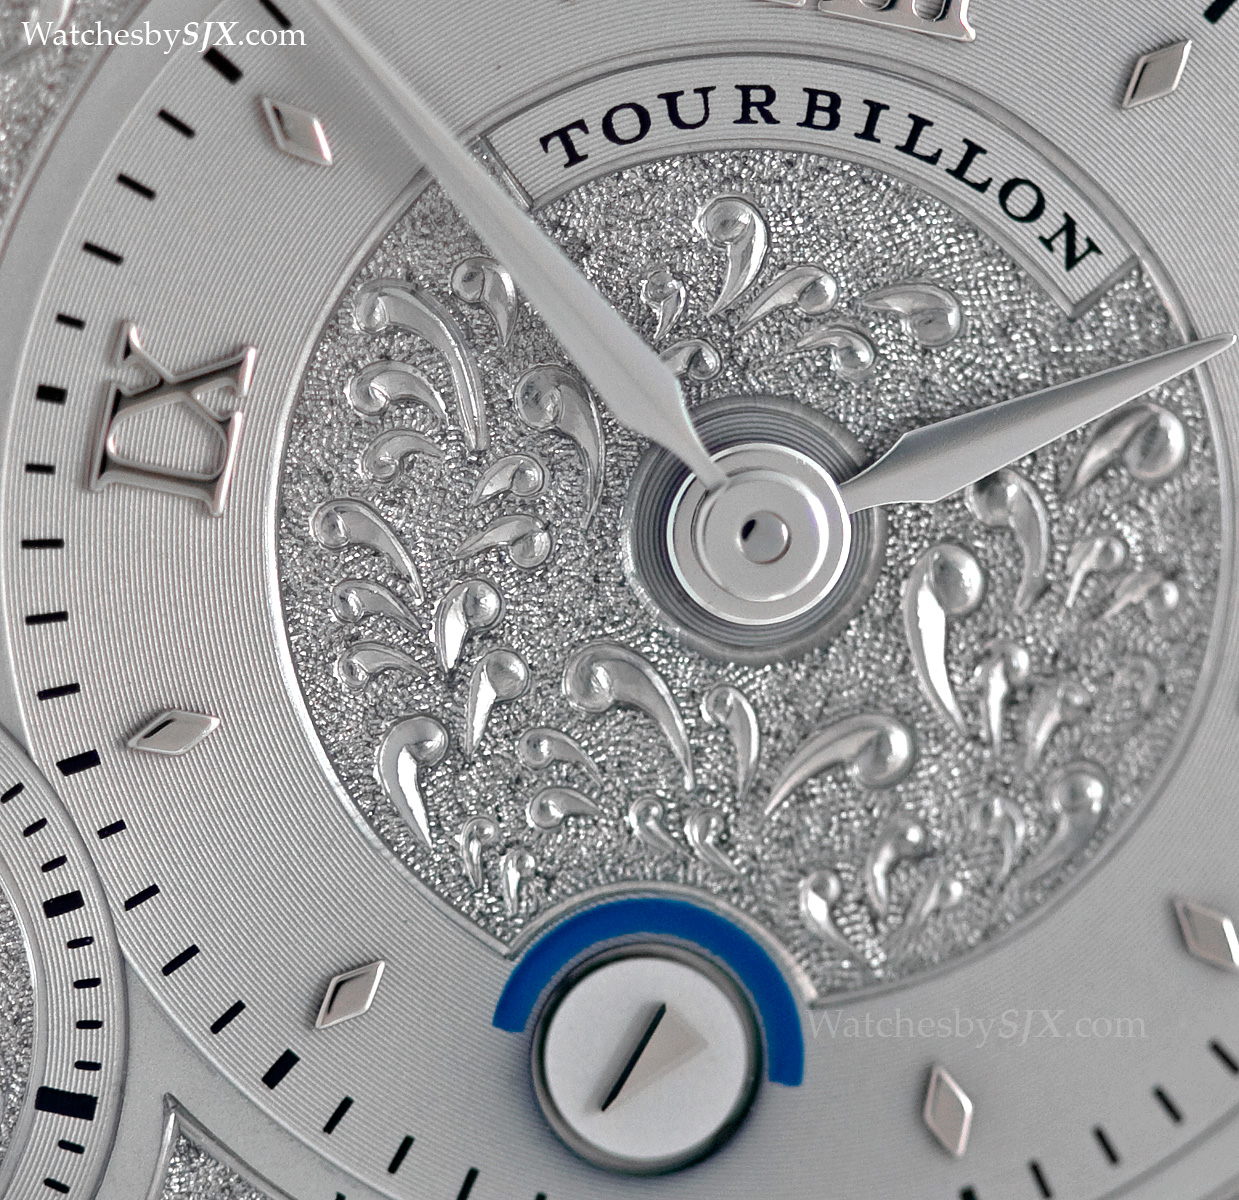 Hand-engraving on the dial